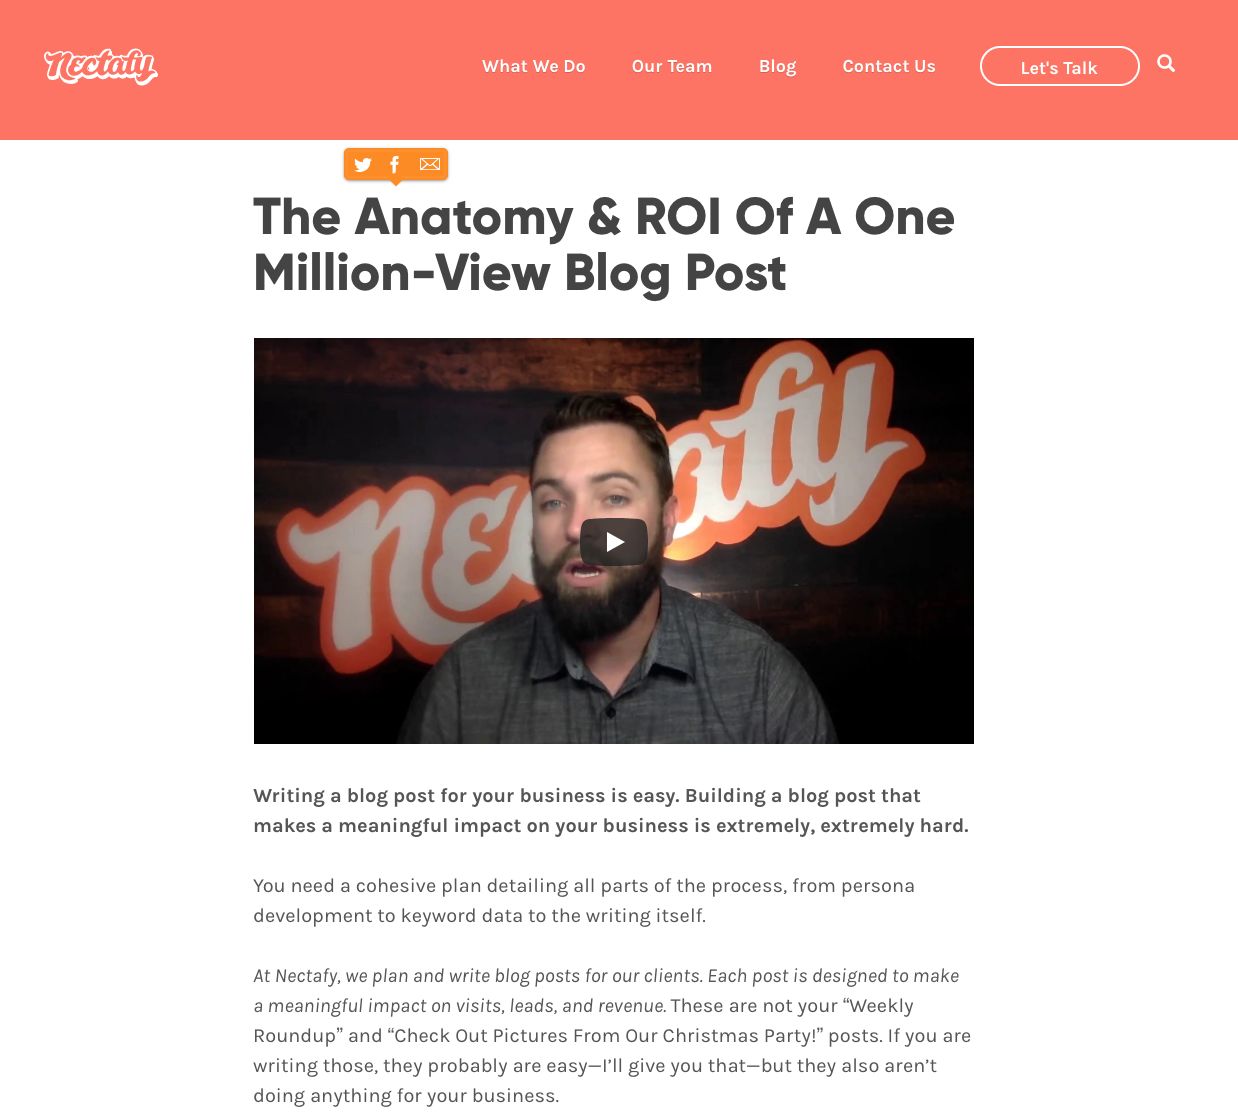 The Anatomy & ROI Of A One Million-View Blog Post - A unique story from Nectafy